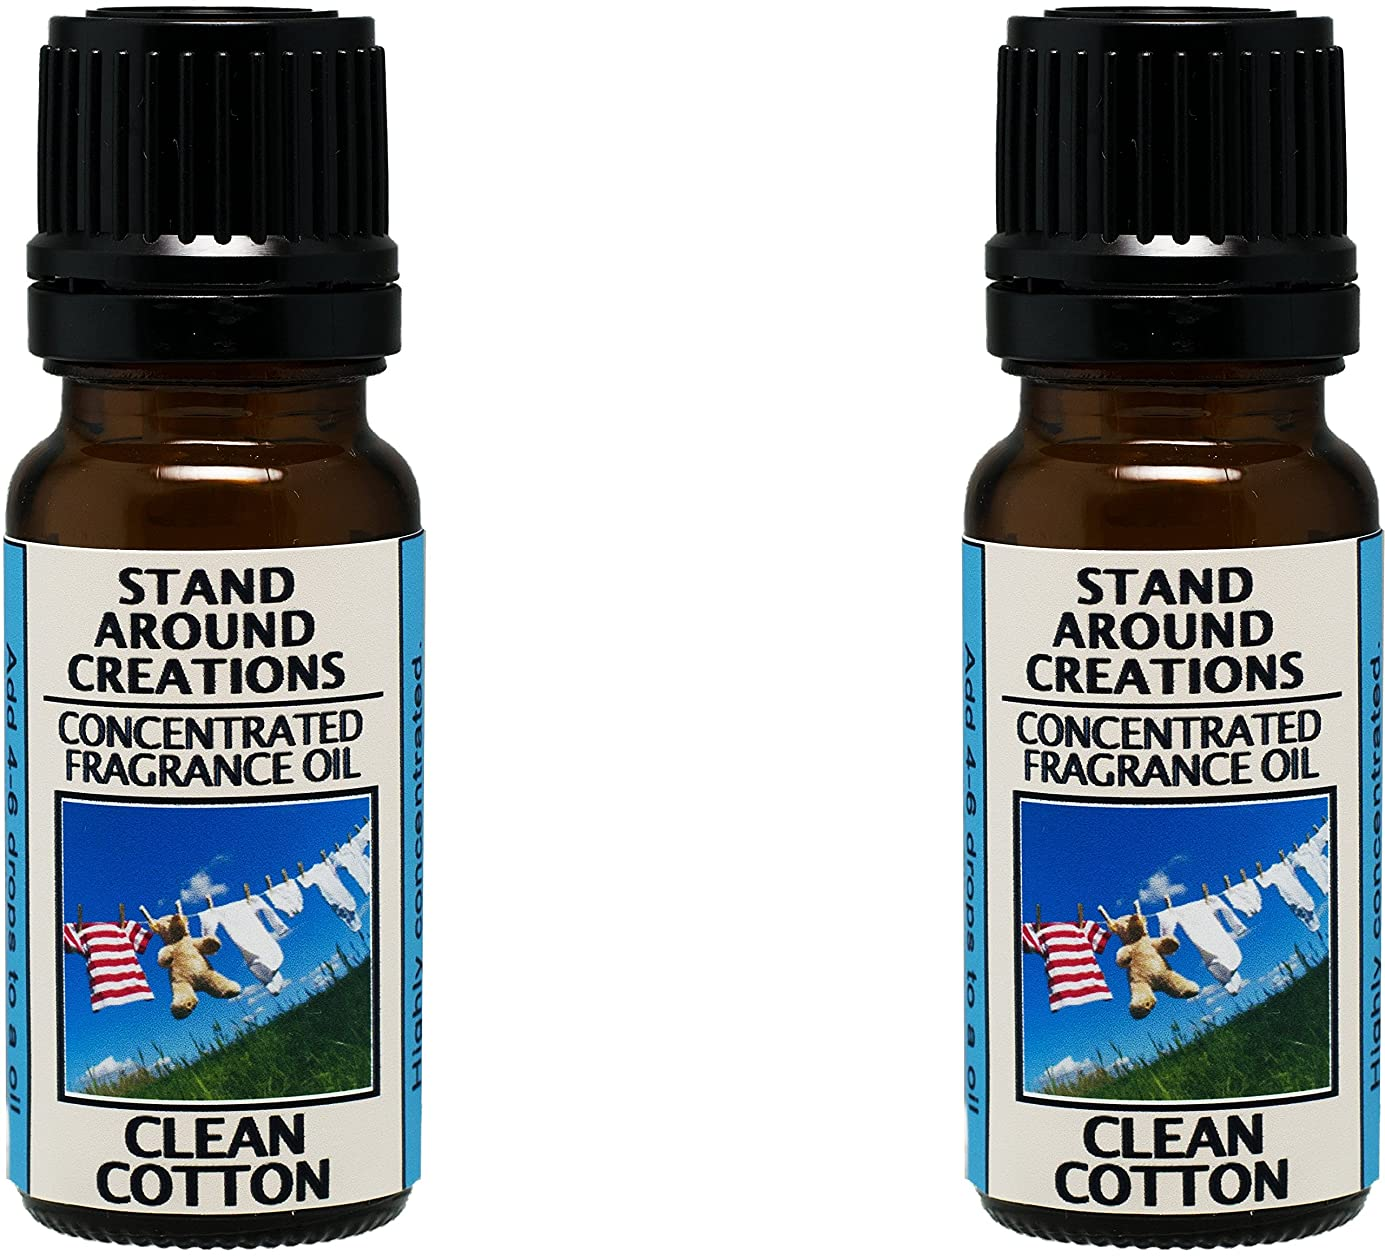 Set of 2 - Concentrated Fragrance Oil - Scent - Clean Cotton: Fresh linens dried on a fresh breezy day. The base is a soft violet, lavender and musk. (.33 fl.oz.) eeljfw3522